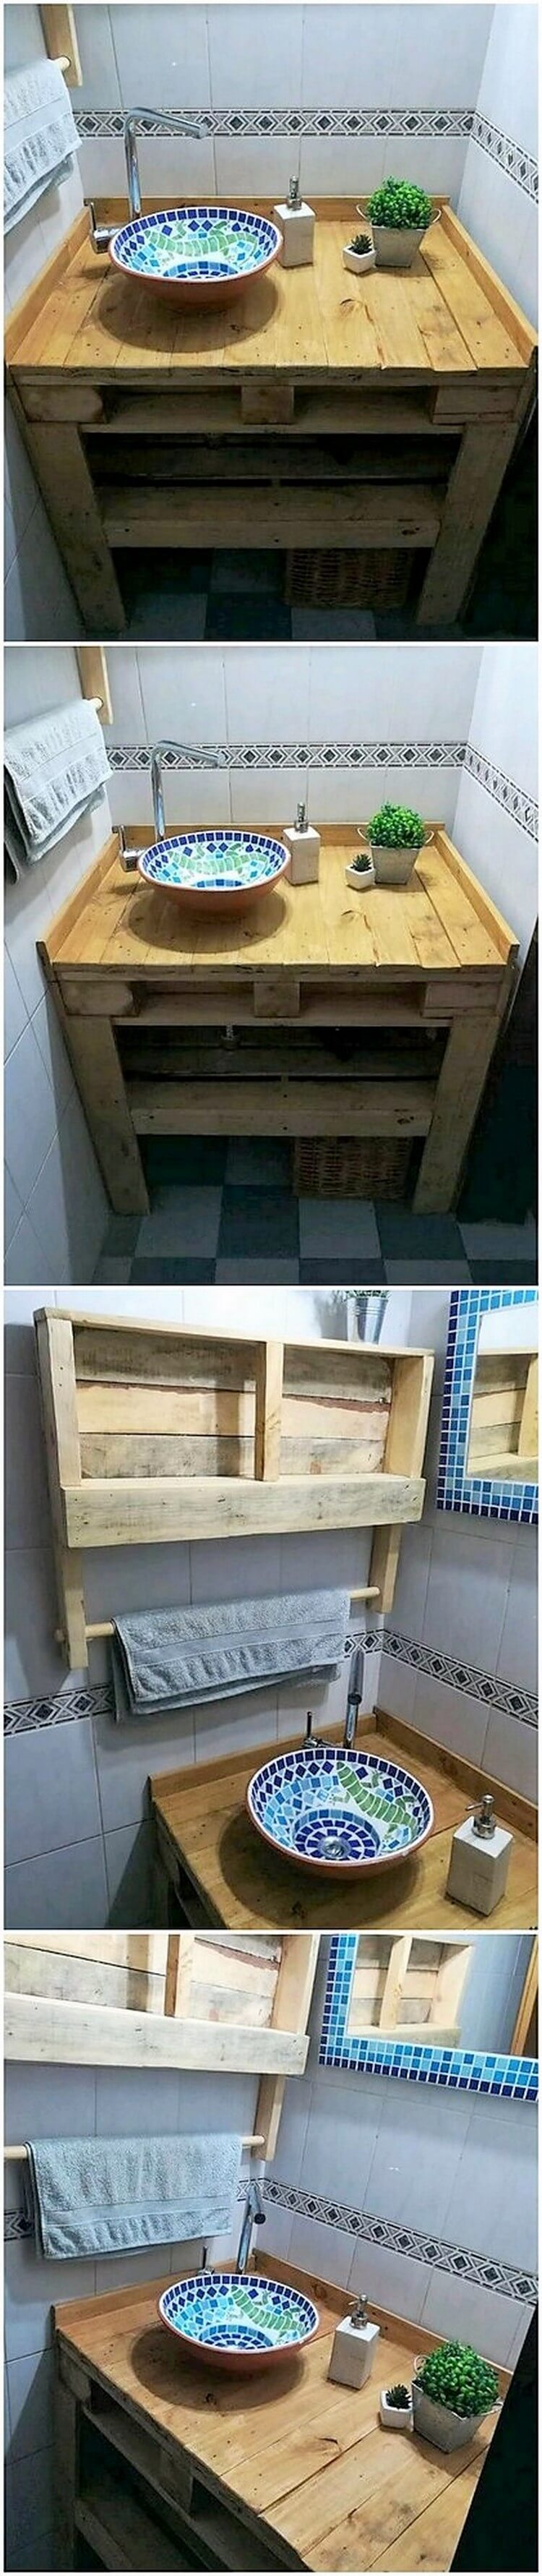 Pallet Sink and Towel Rack